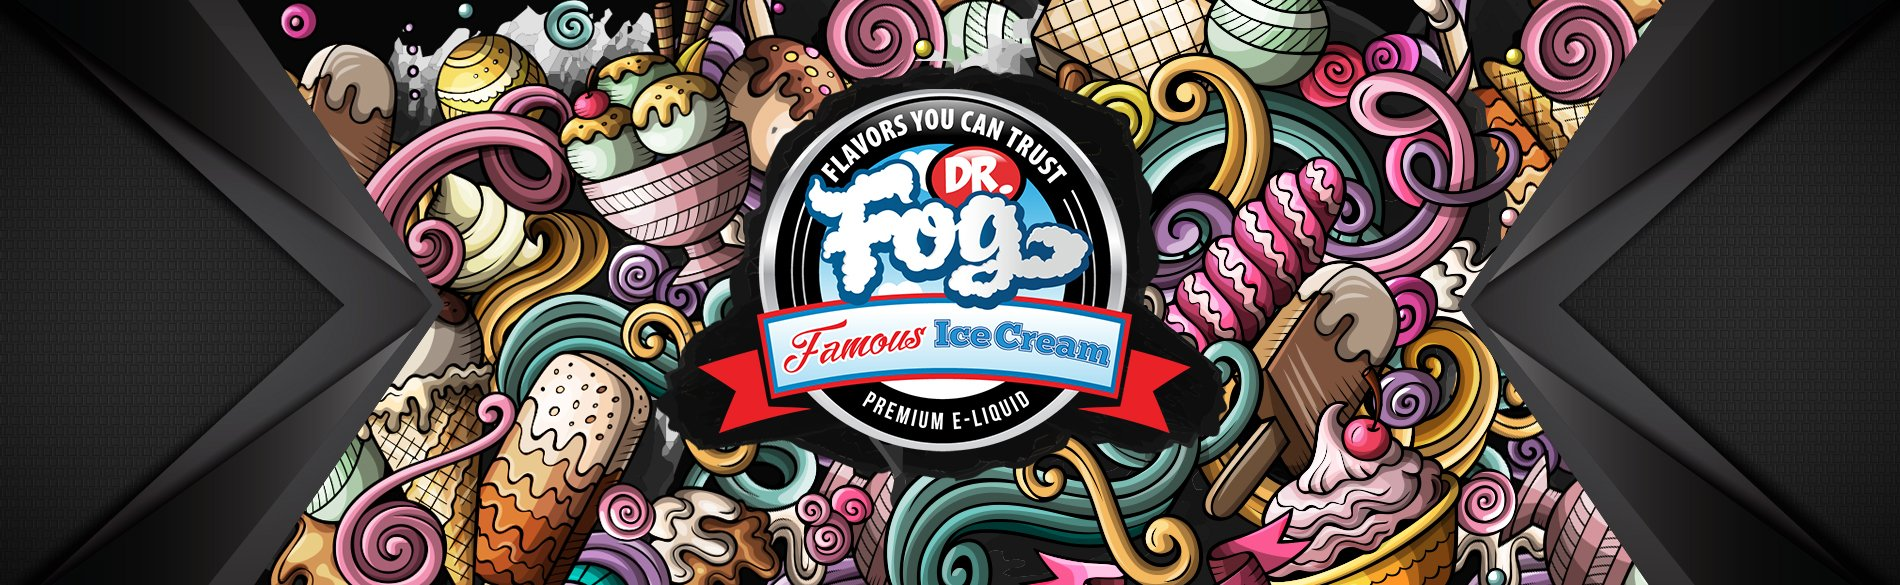 Dr. Fog Famous Ice Cream Series 100ml Shortfill - ECIGONE